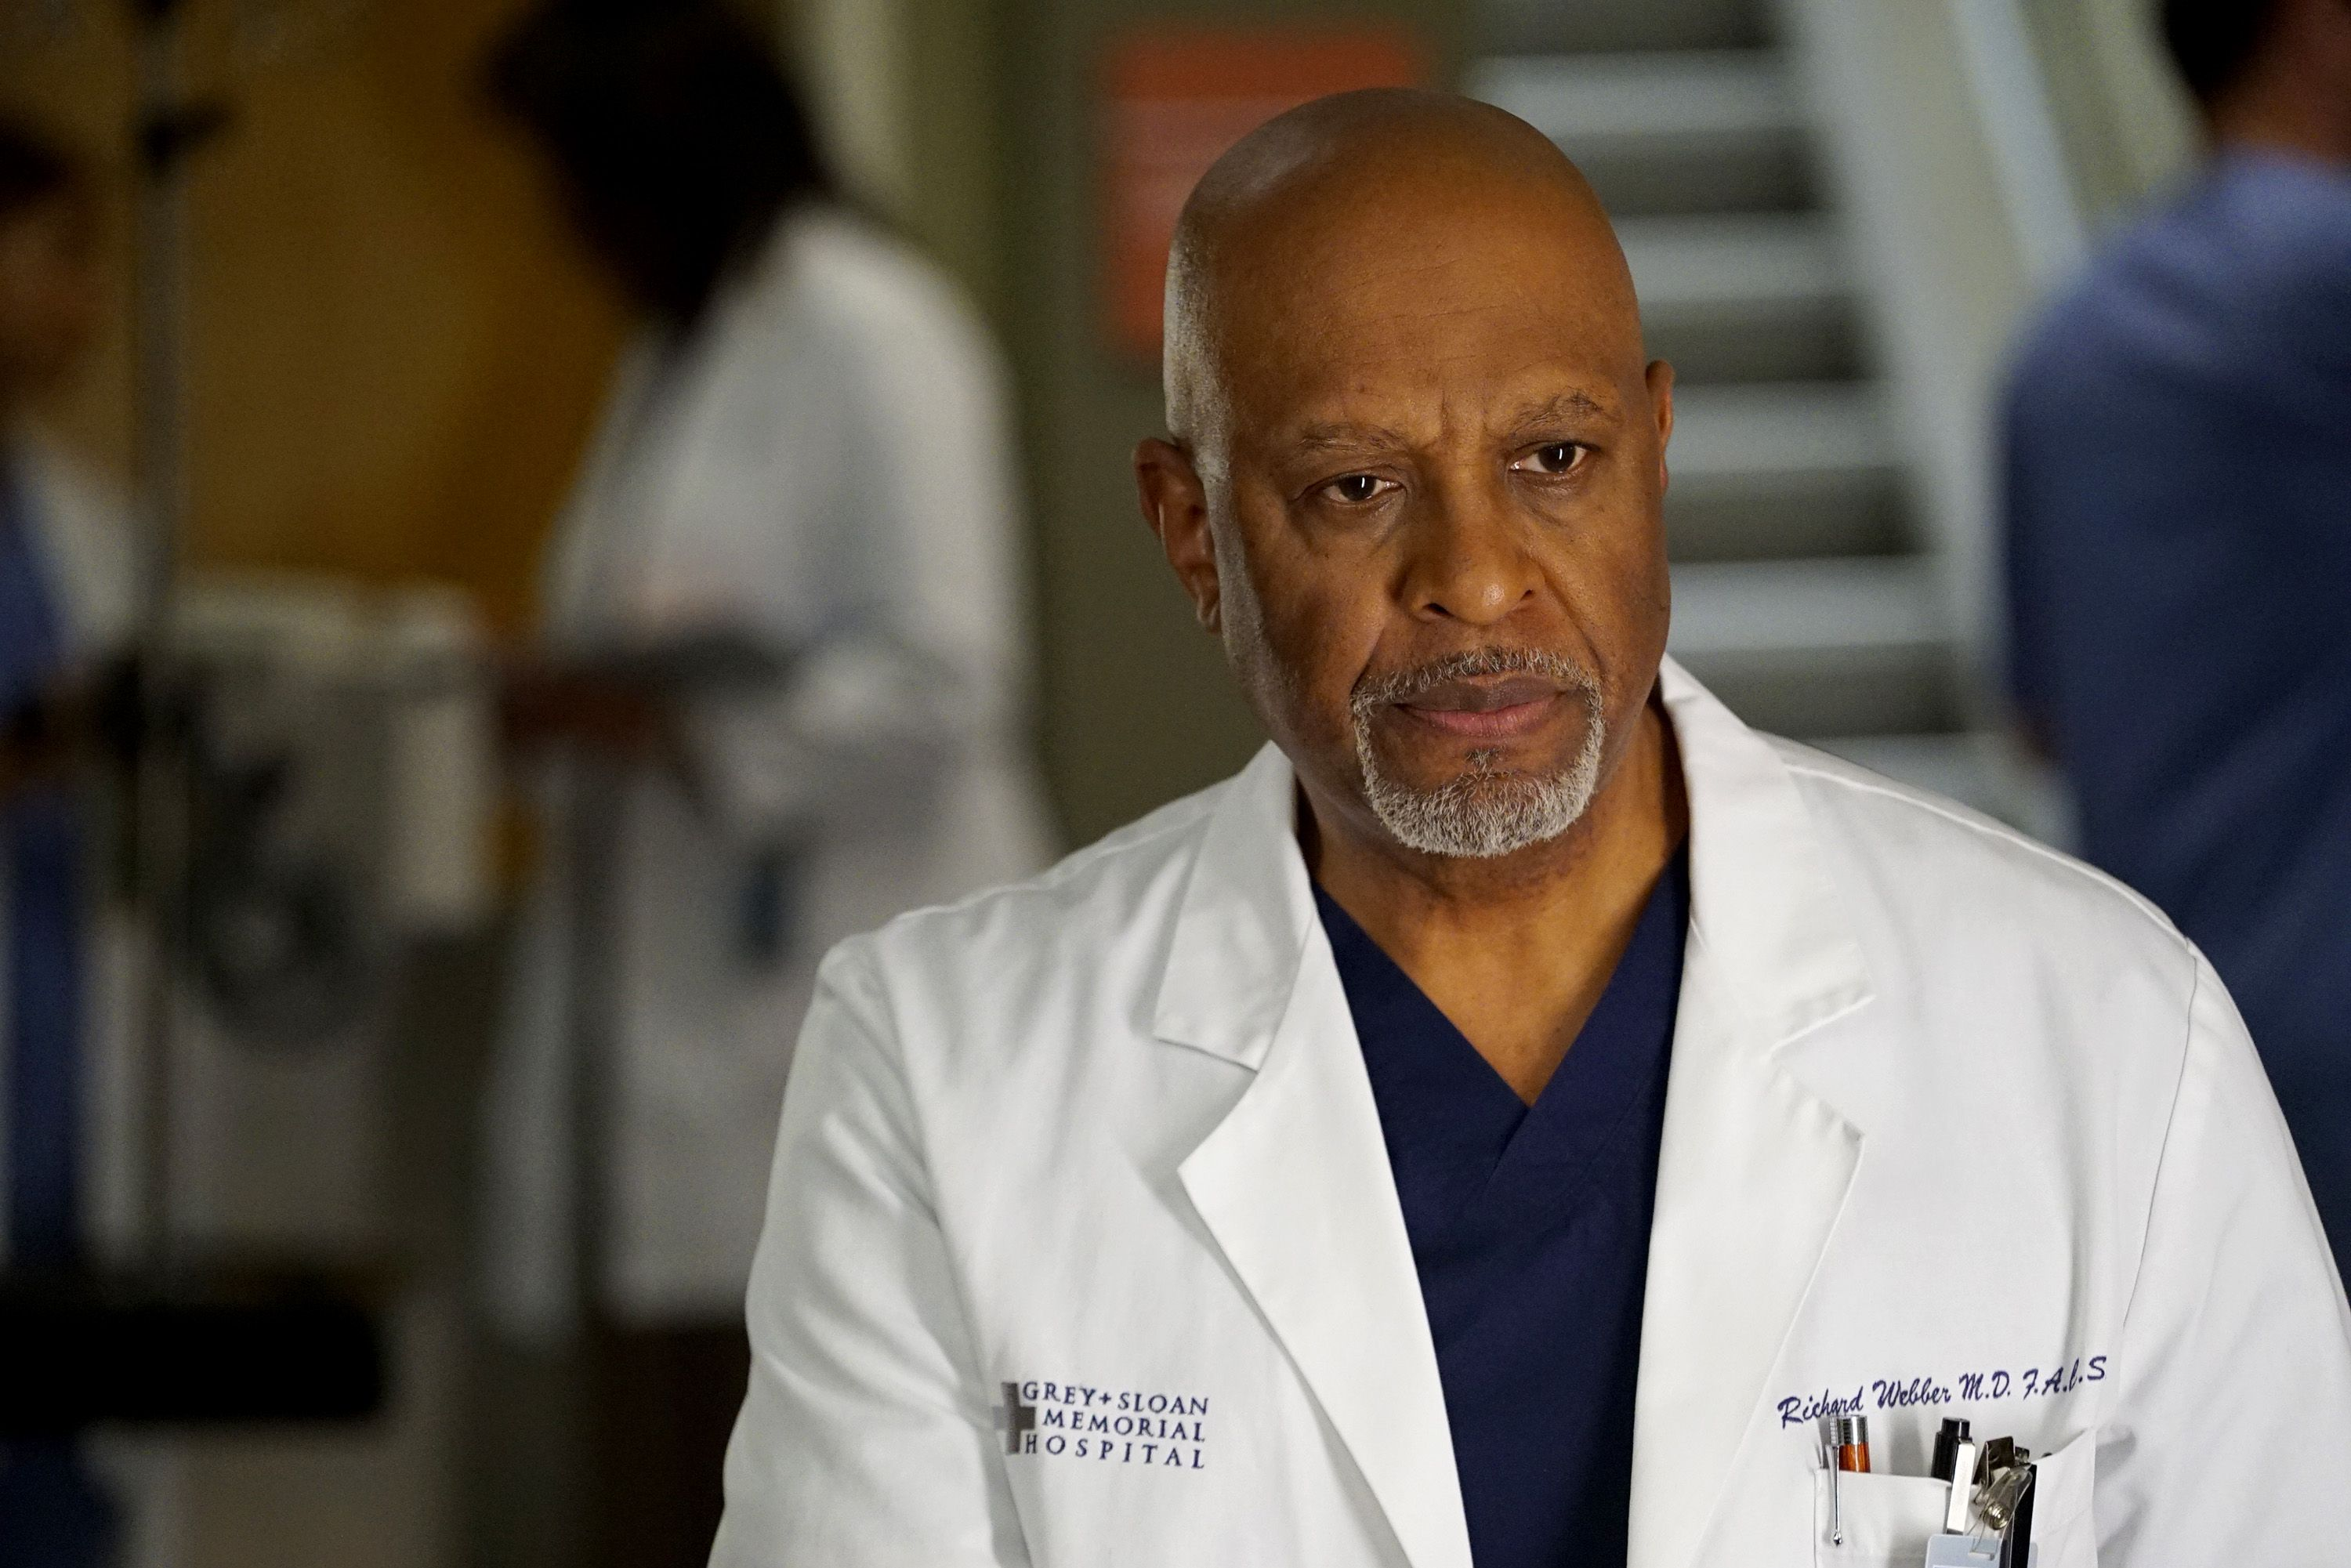 Is Richard Webber Going to Cheat on Catherine Avery? 'Grey's' Fans Definitely Think so